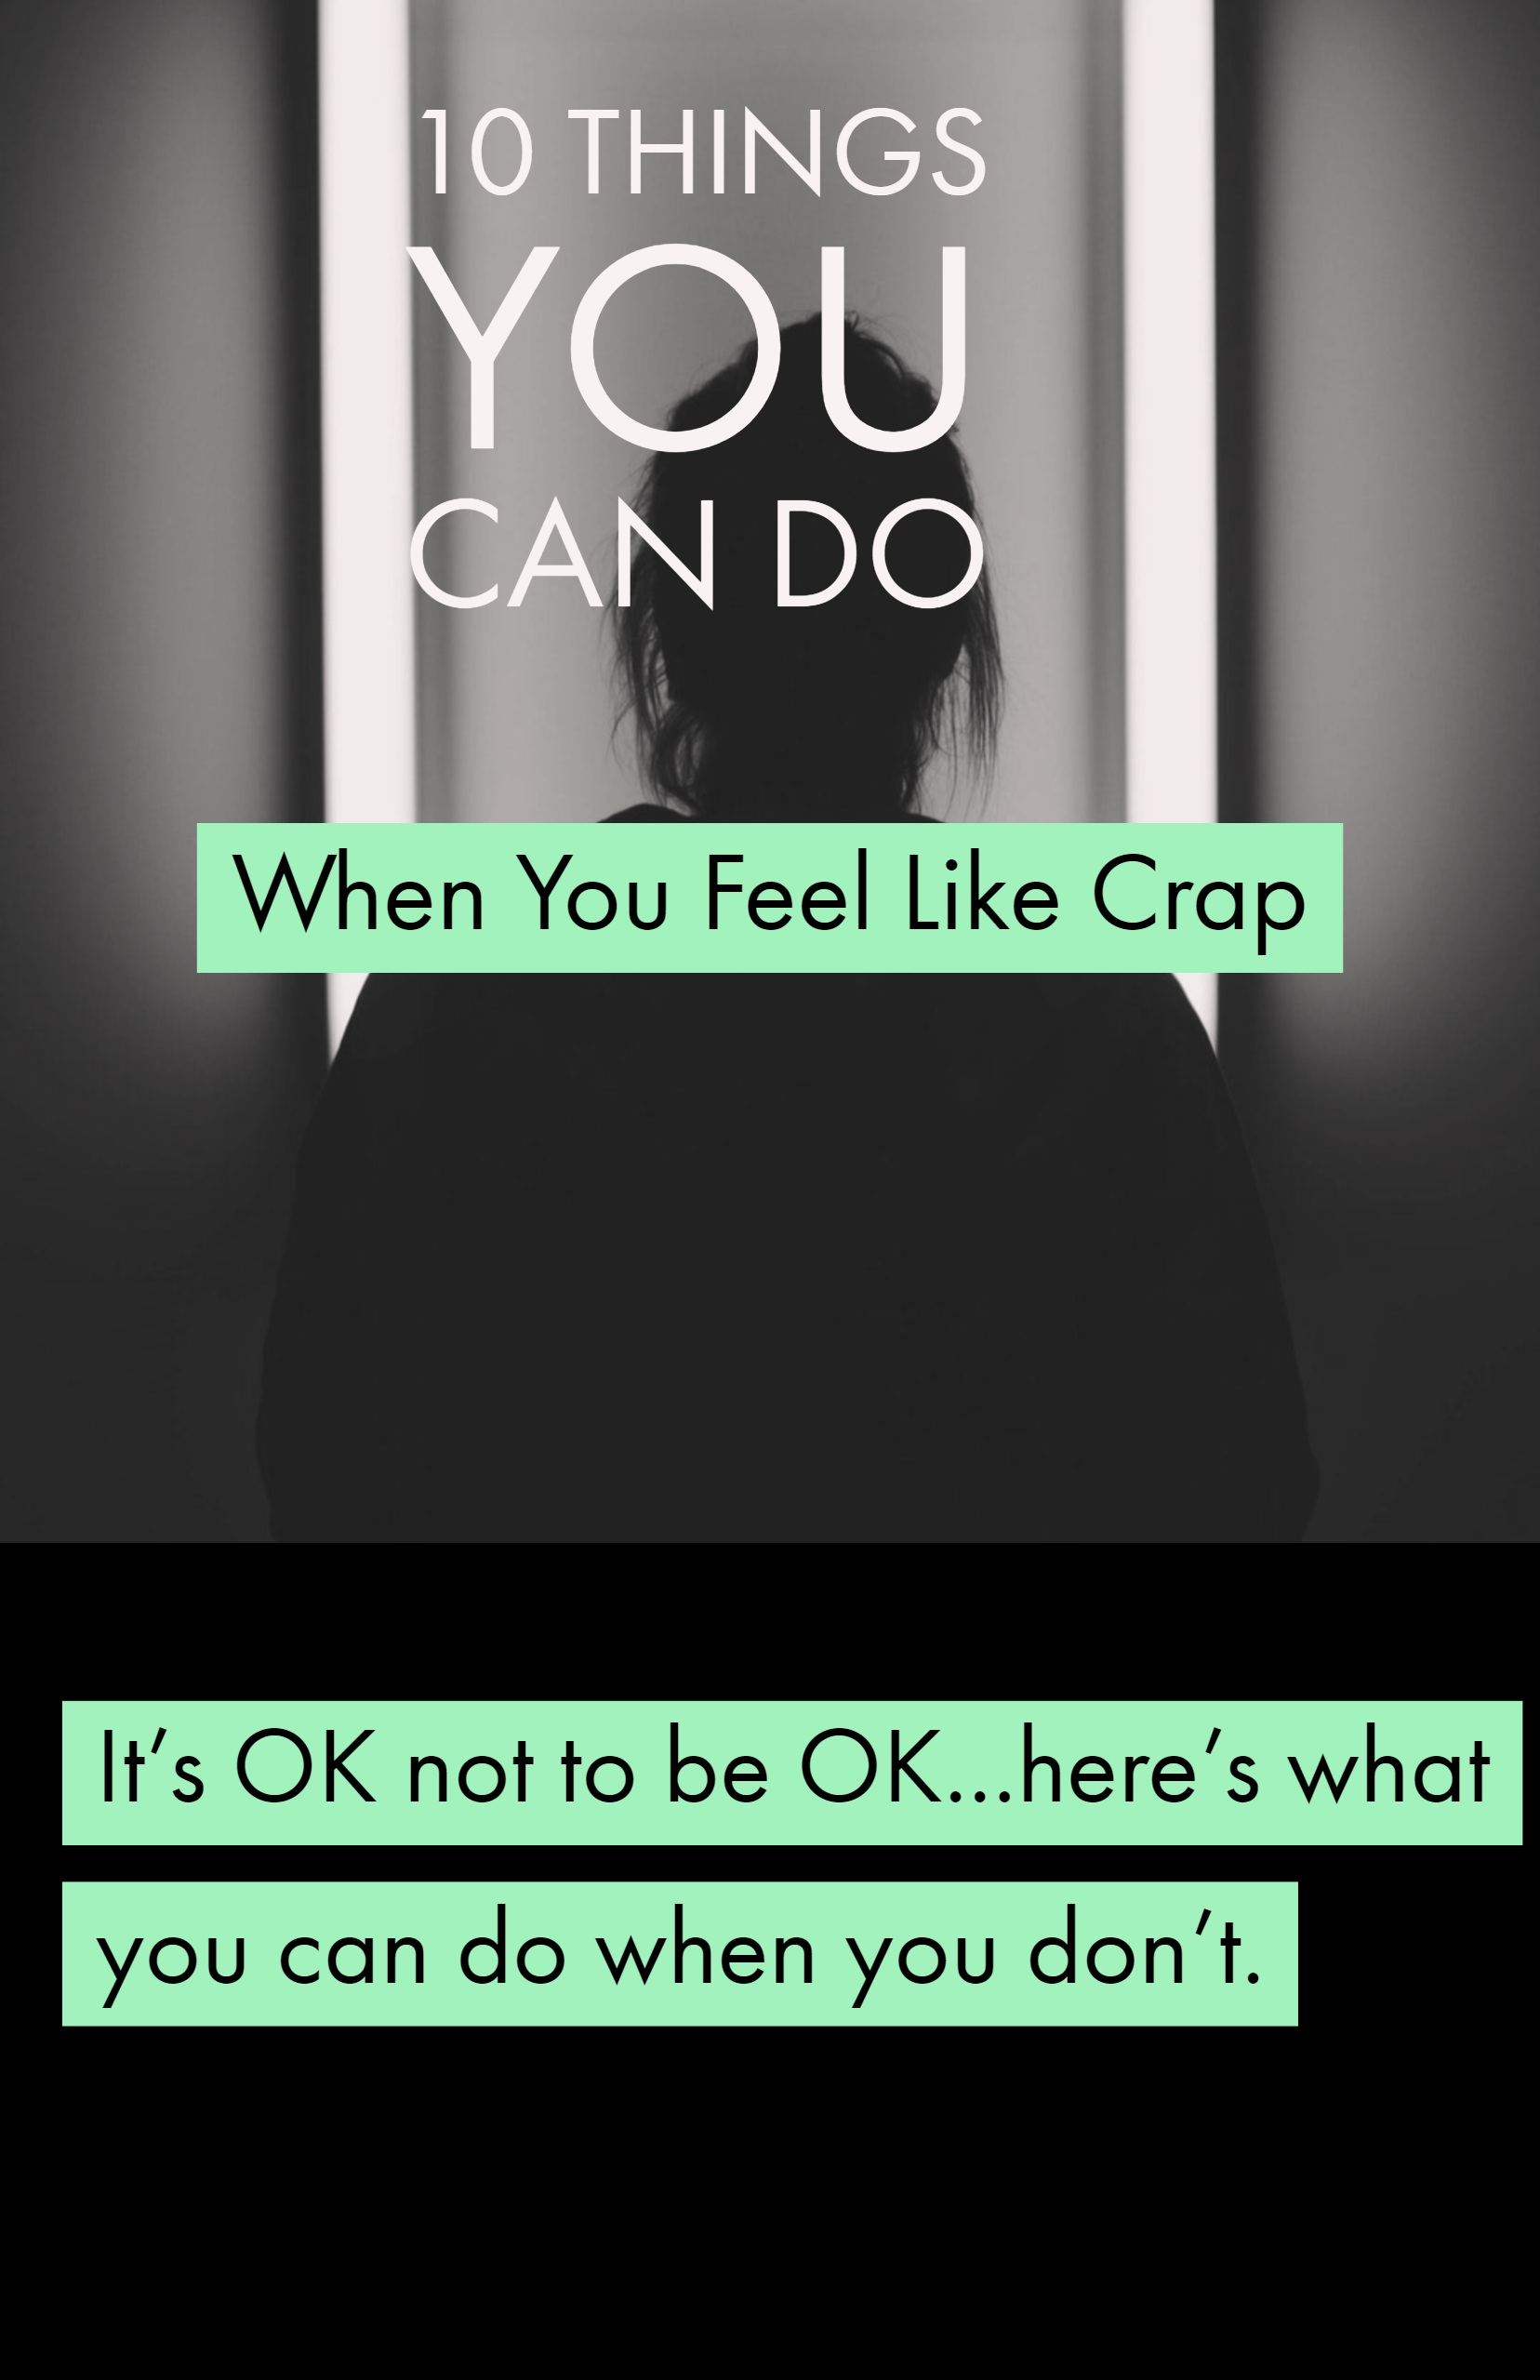 10 Things You Can Do When You Feel Like Crap